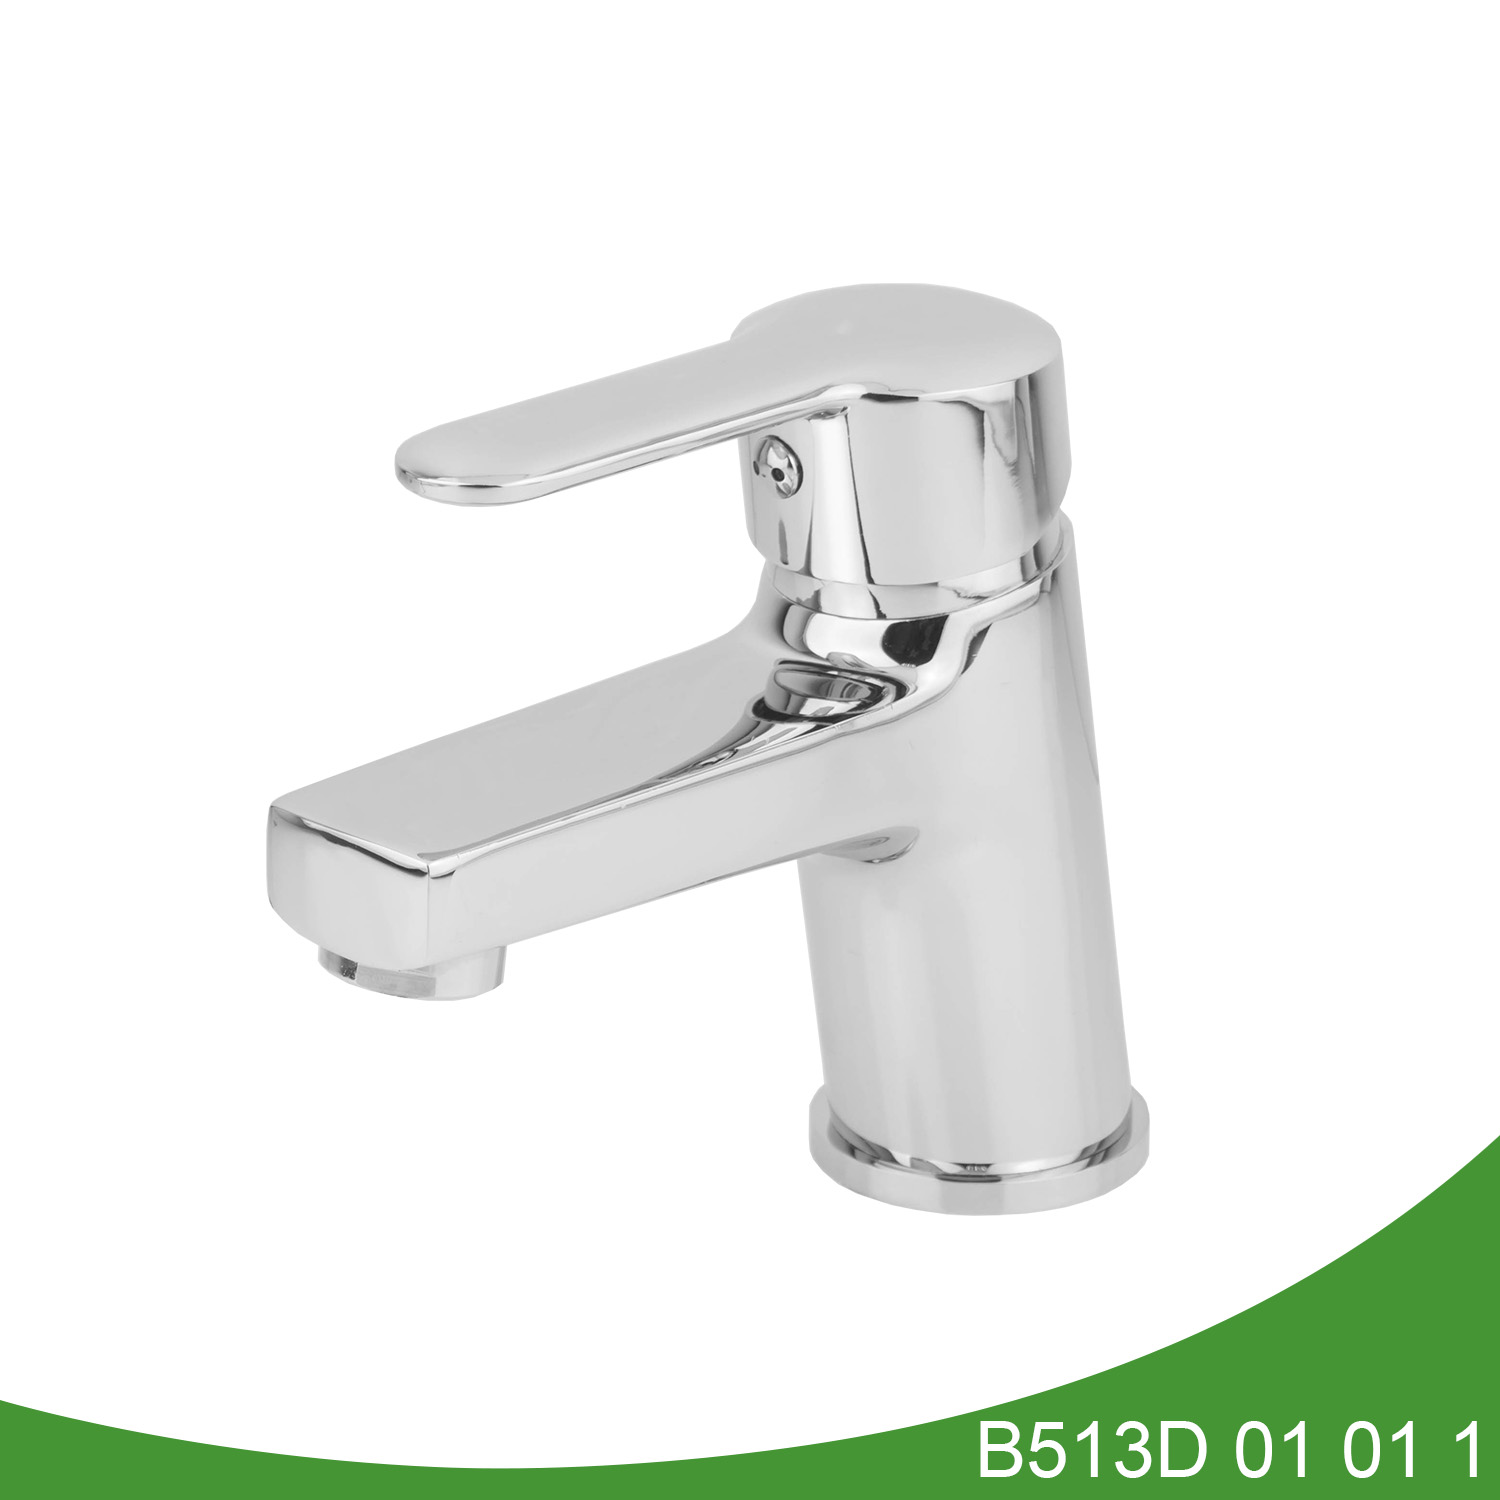 Single handle basin tap B513D 01 01 1